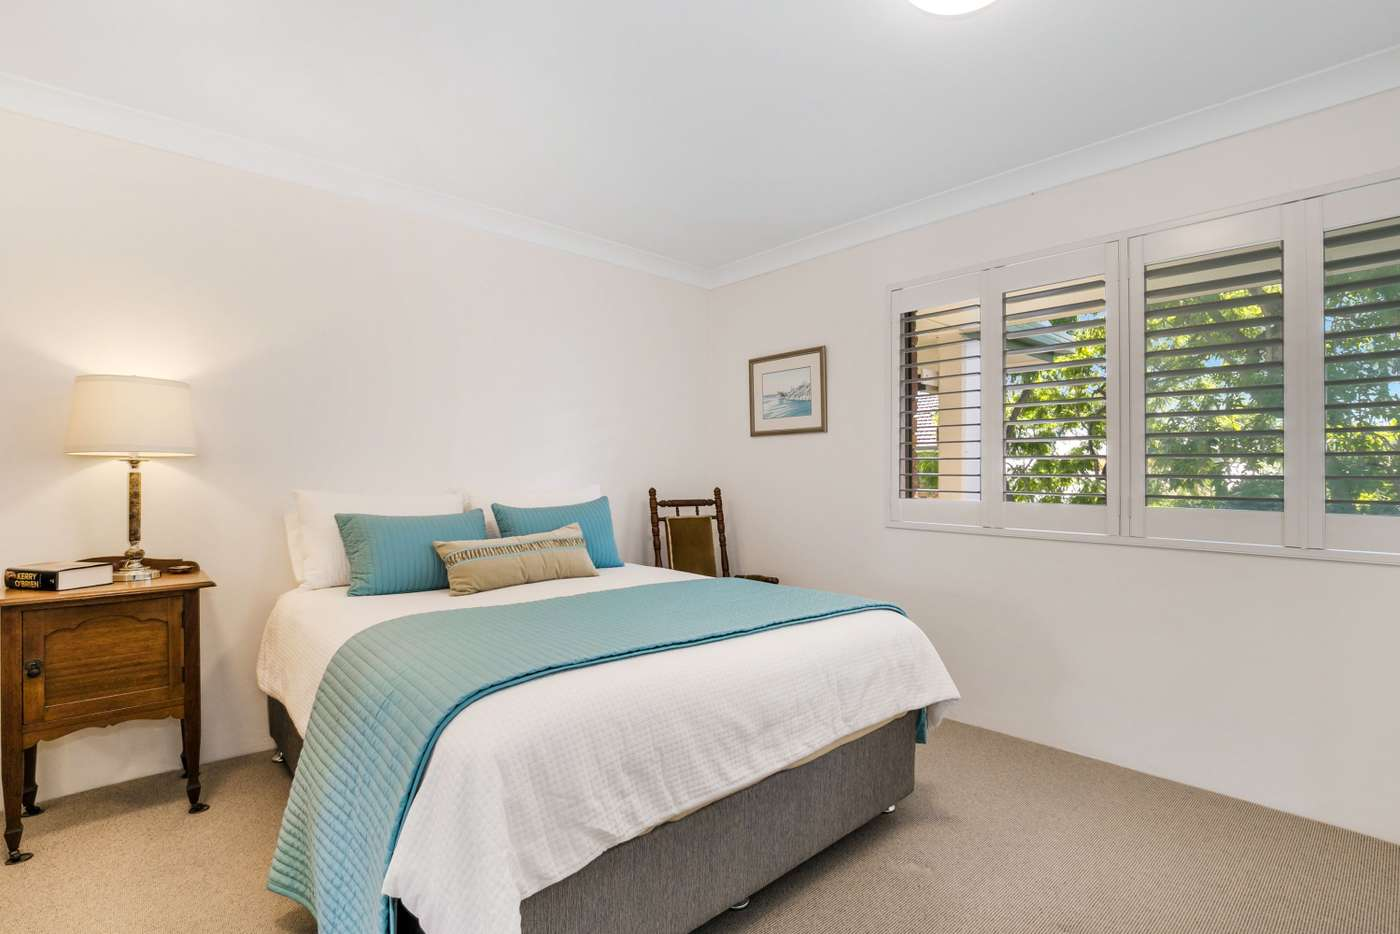 Fifth view of Homely apartment listing, 9/19 Maryvale Street, Toowong QLD 4066